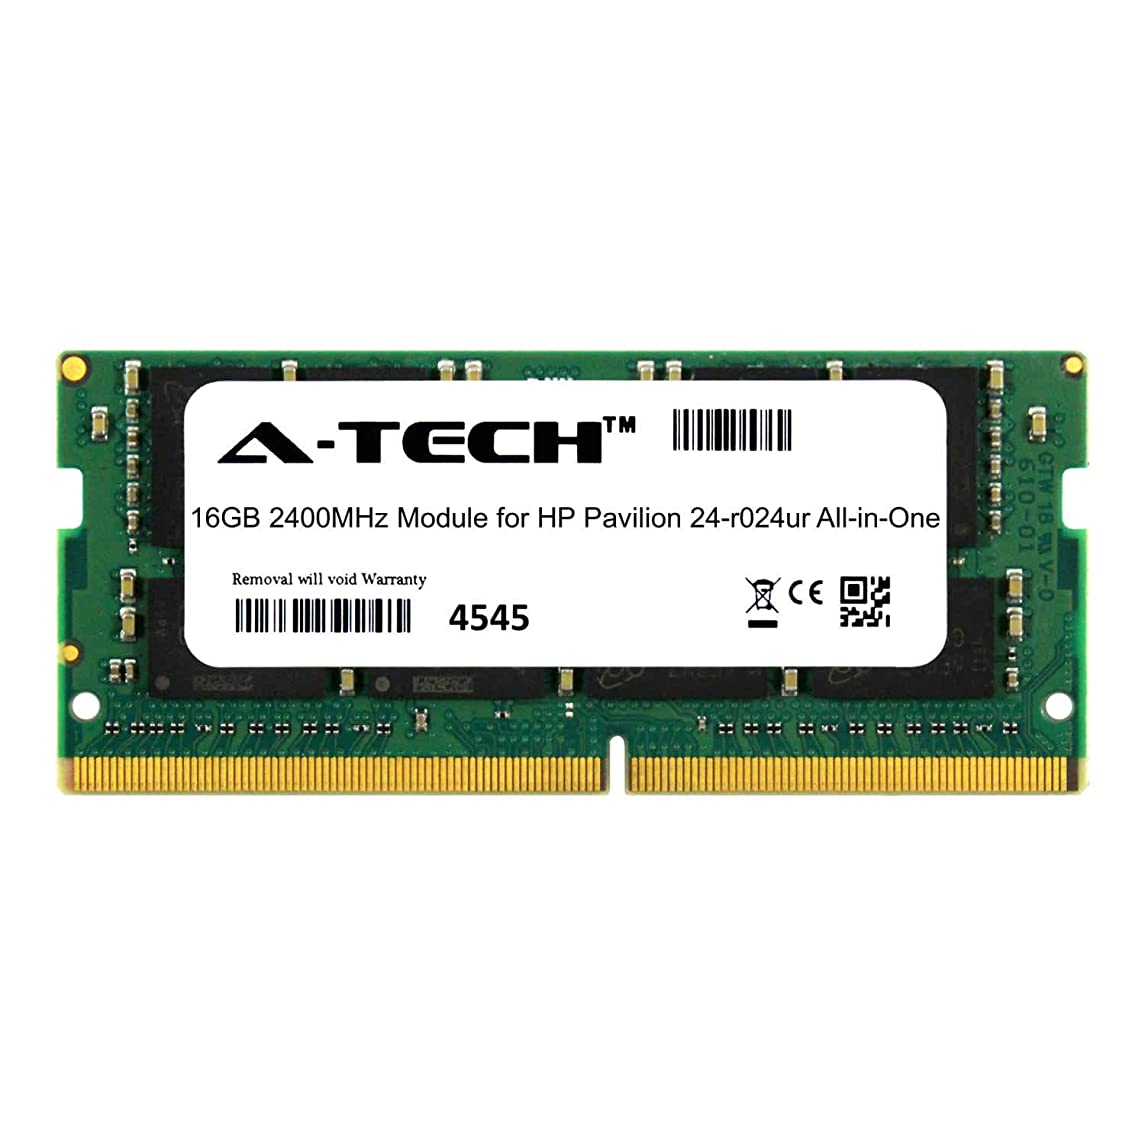 A-Tech 16GB Module for HP Pavilion 24-r024ur All-in-One (AIO) Compatible DDR4 2400Mhz Memory Ram (ATMS307372A25831X1)